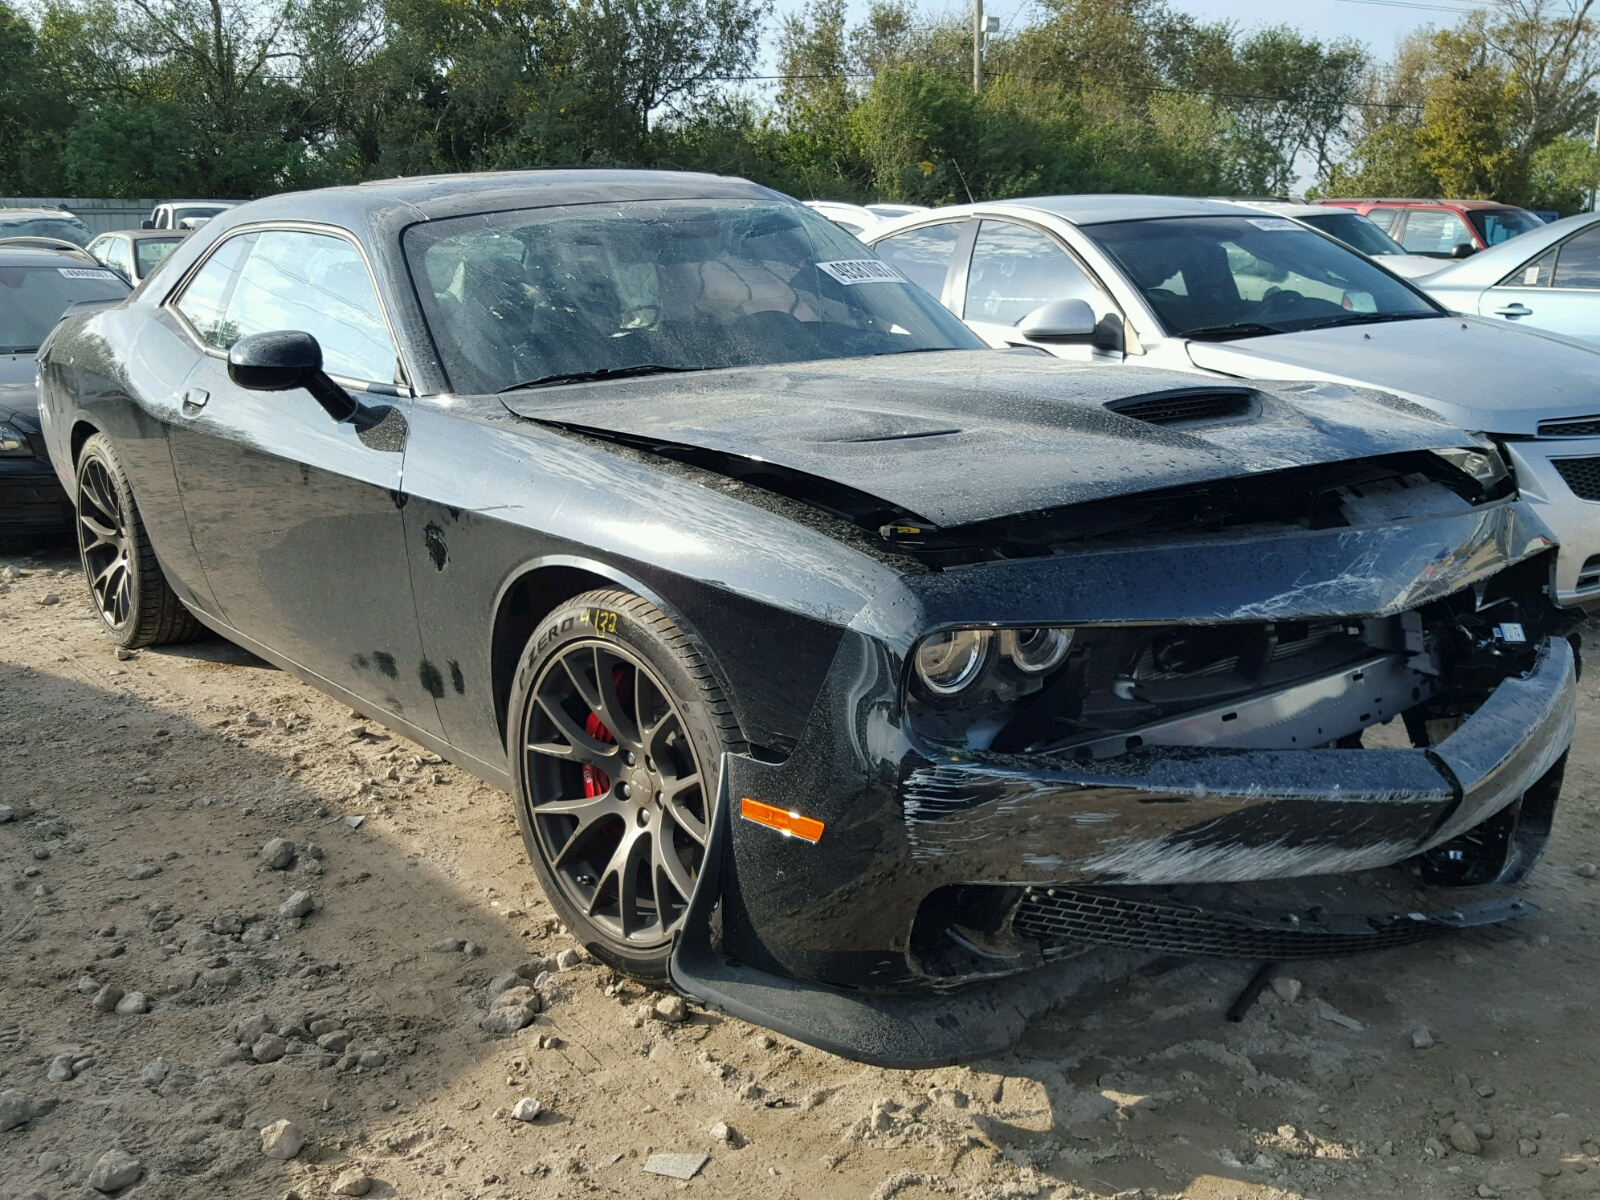 challenger best product hellcat looking ebay dodge awesomeamazinggreat great on